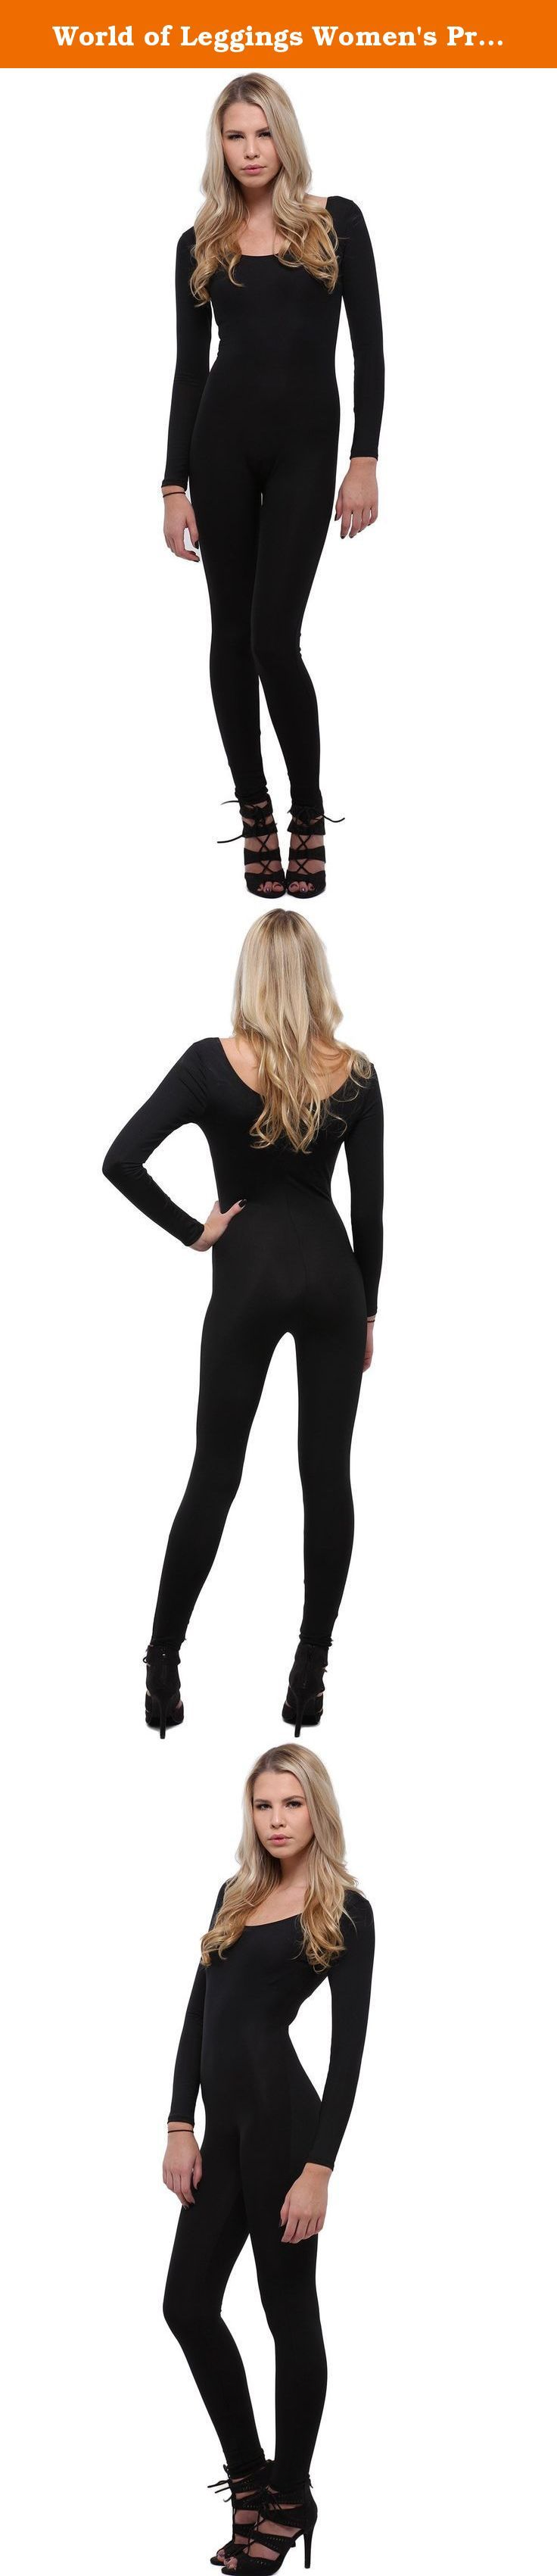 """World of Leggings Women's Premium Basic Full Nylon Spandex Jumpsuit - Black. Model is wearing a One Size. Measurements are 32B x 24 x 35 and height is 5' 8"""" (172.7 cm) If there's one staple you need in your wardrobe for any season it's out Basic Full Nylon Spandex Jumpsuit. Whether it's for layering under long dresses to hold you in, a comfy outfit to work out in, or a sexy look to accessorize for a night out, this fabulously versatile fashion piece covers all bases. You will love having..."""